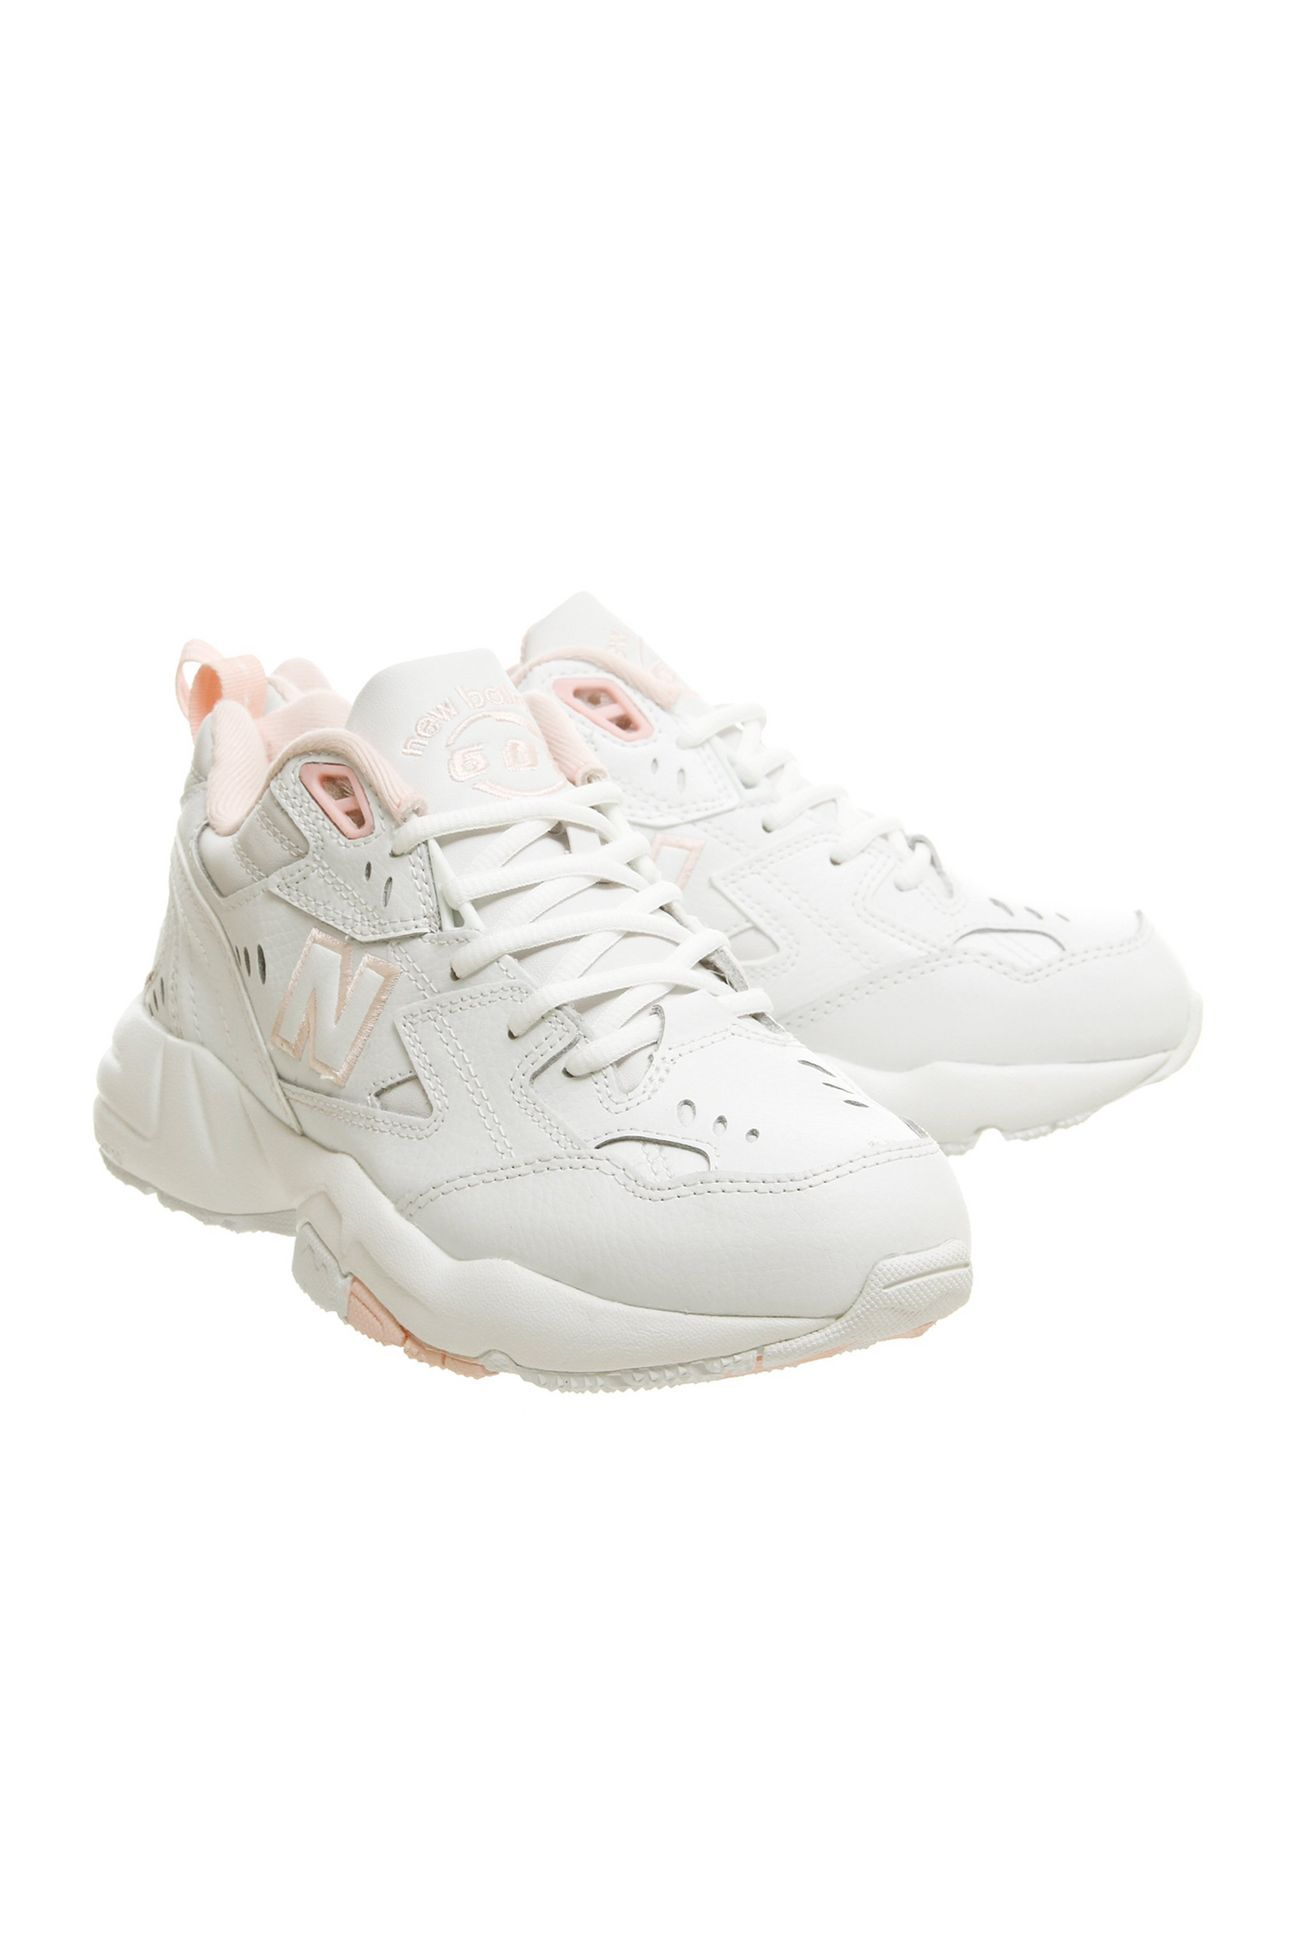 New Balance 608 Trainers by Office | New balance trainers ...